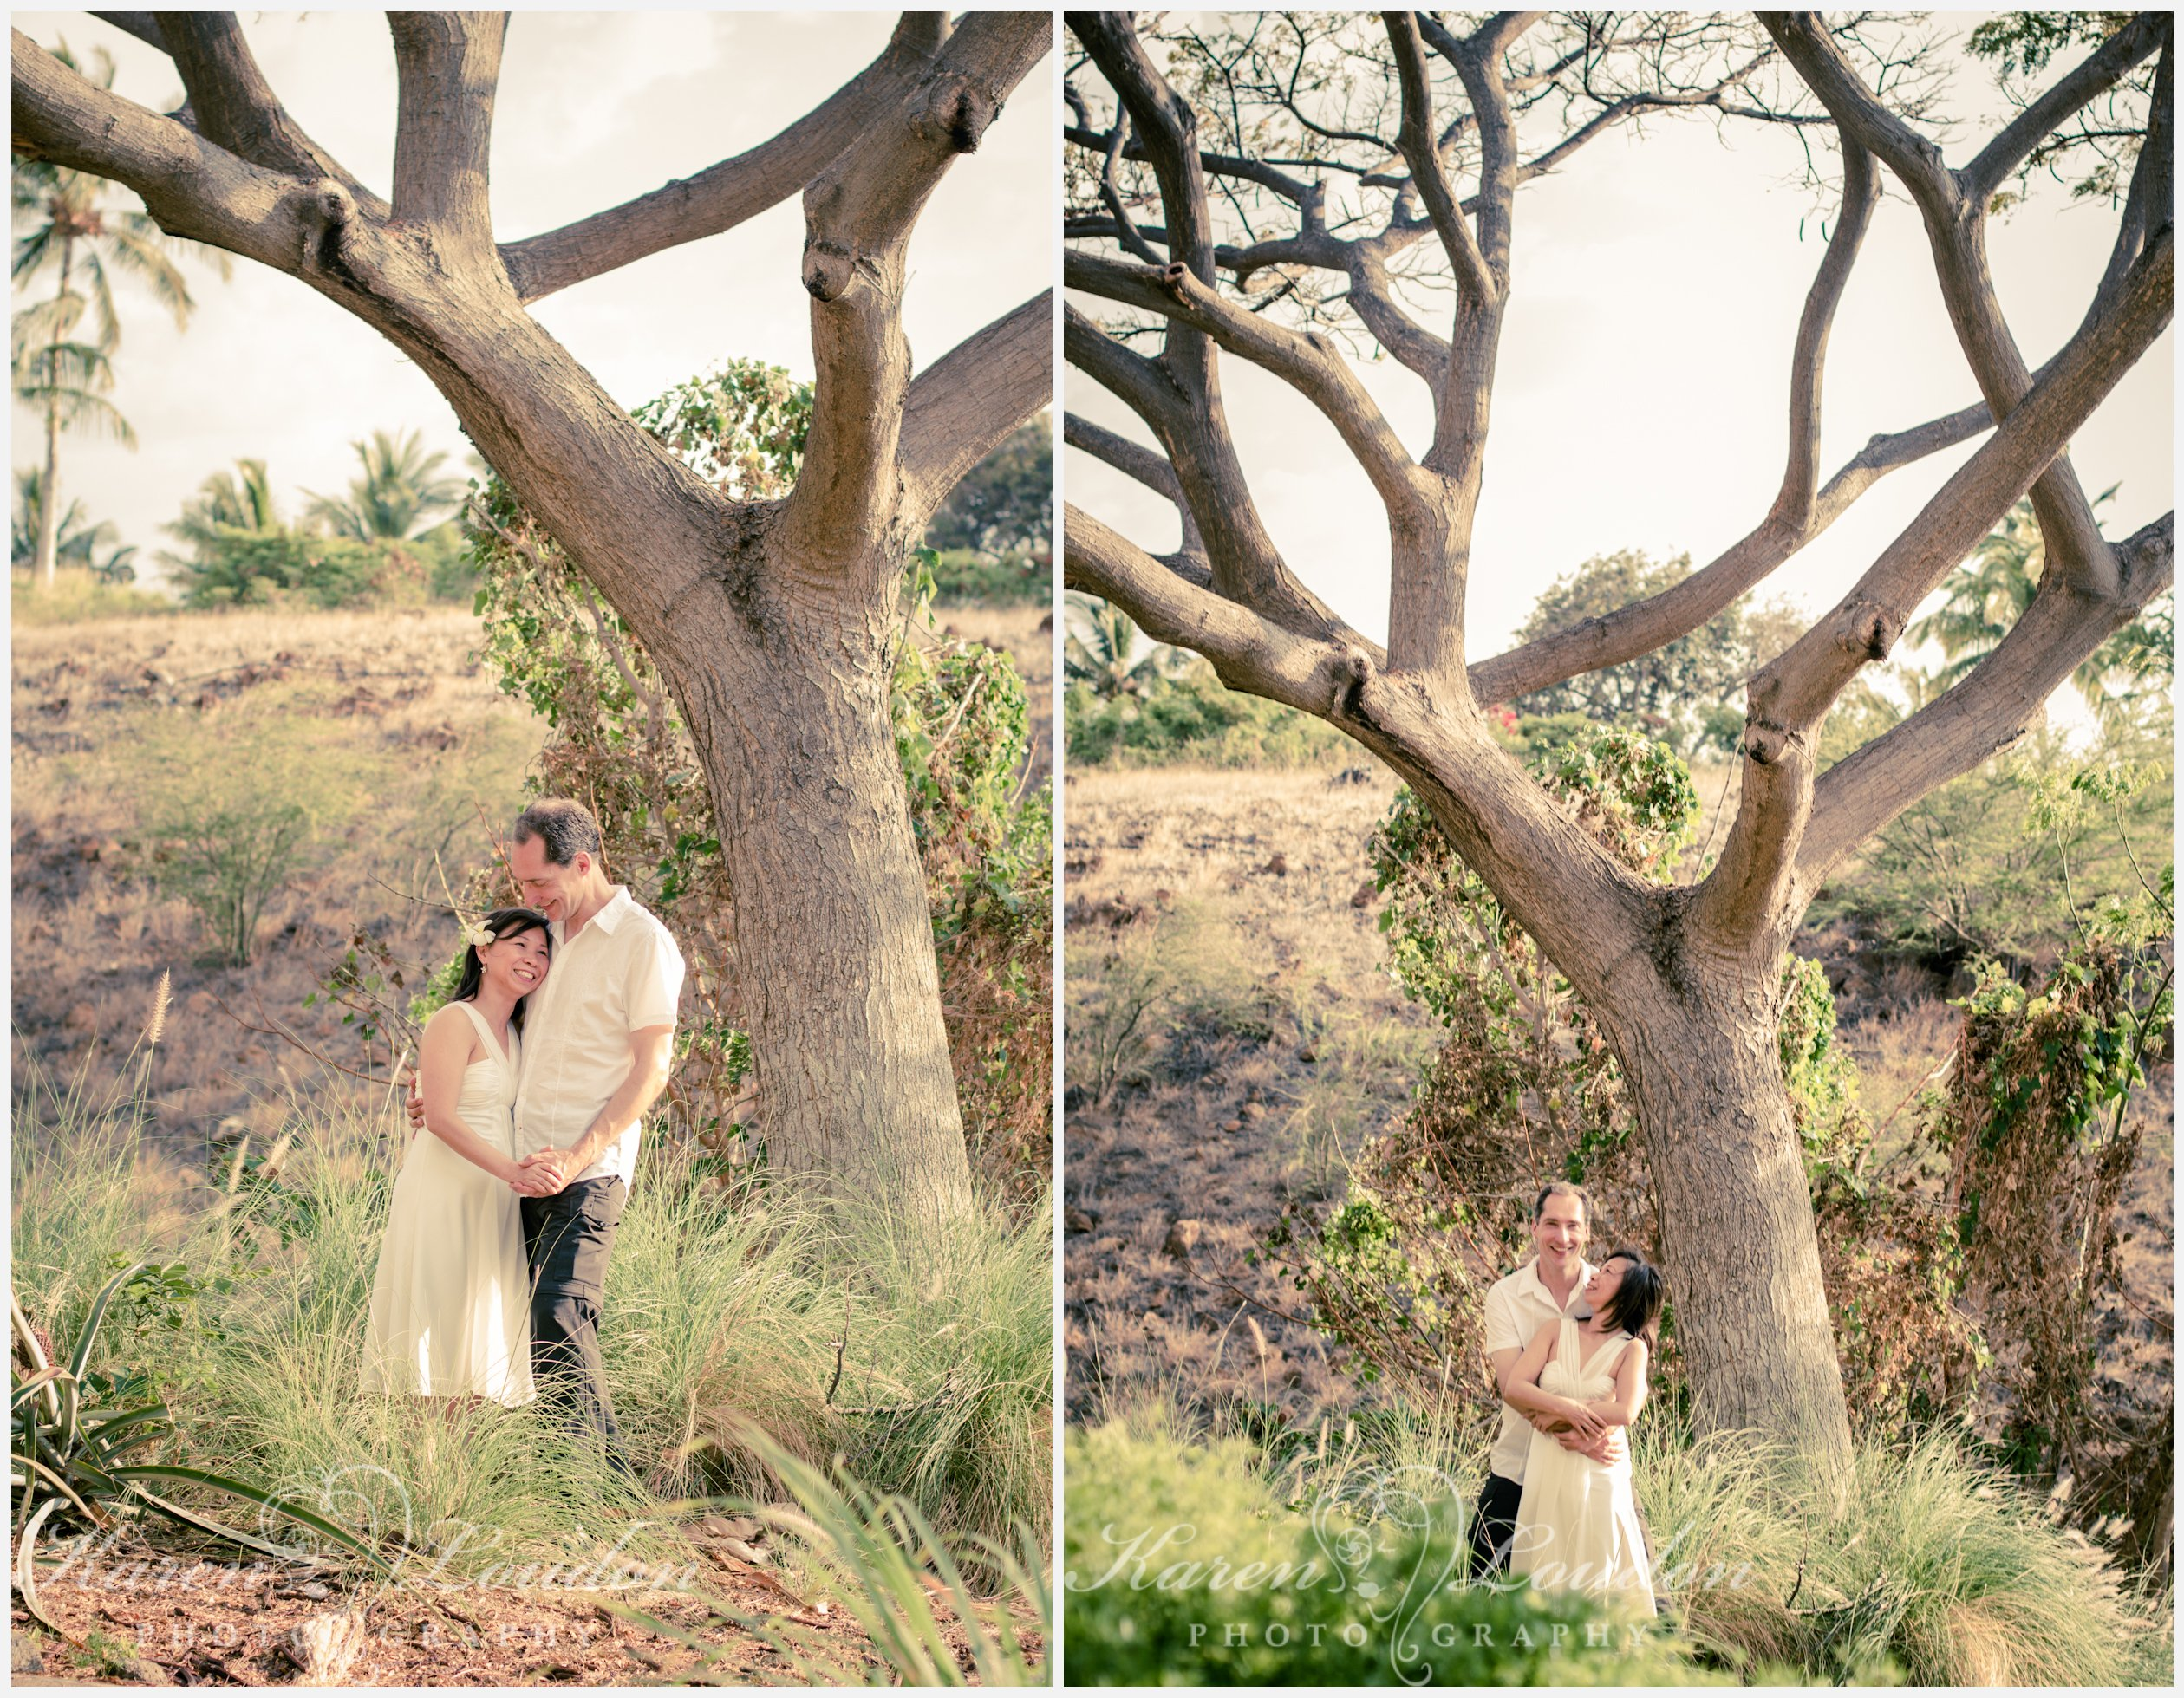 A wedding elopement at the Westin Hapuna Beach Resort